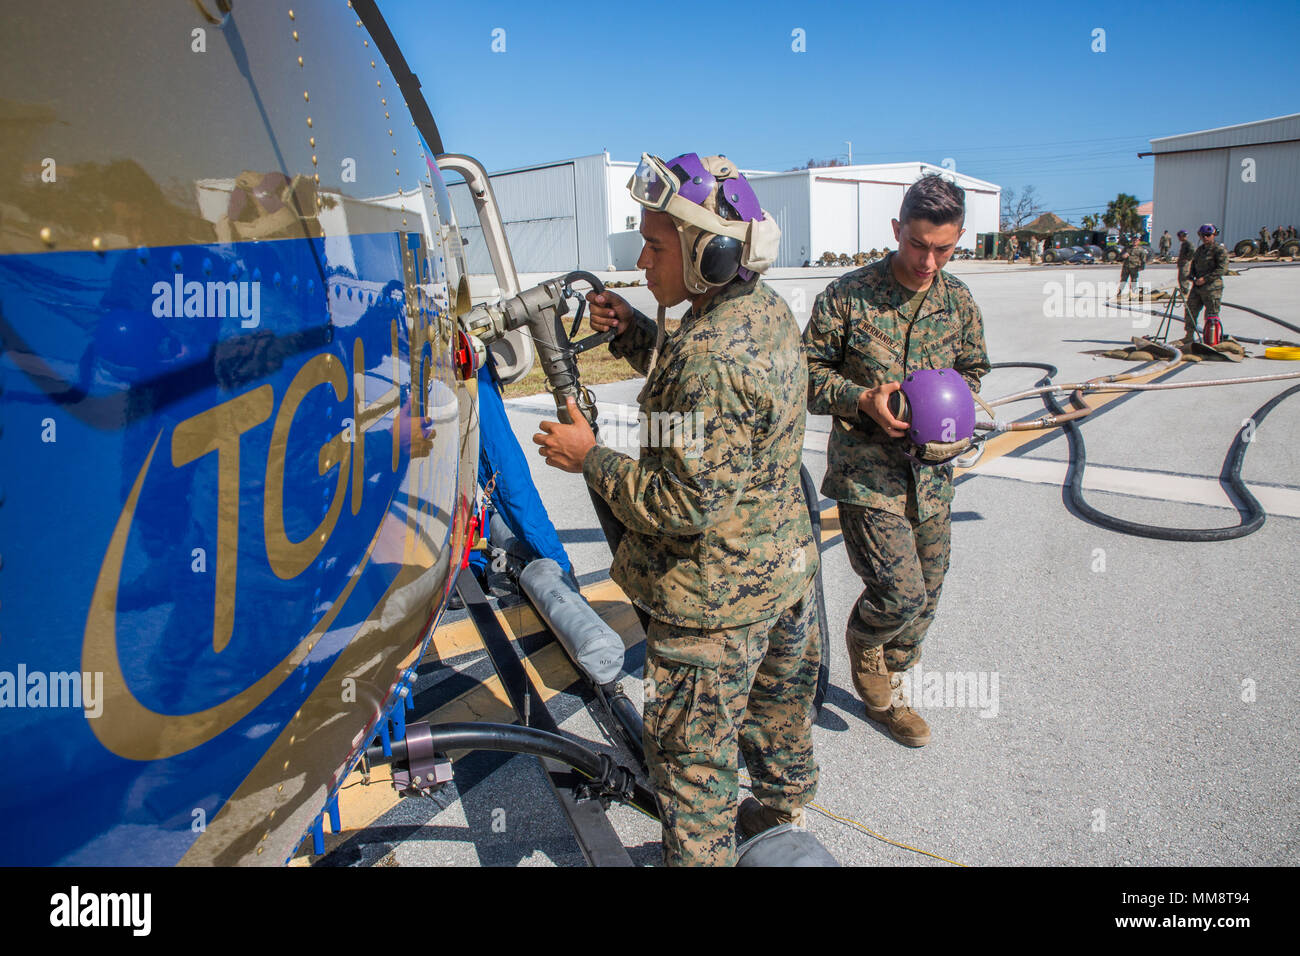 Lance Cpl. Sergio Hernandez (left), a bulk fuel specialist, and Pfc. Nicolas Hernandez (right), a Motor-T operator, both with Marine Wing Support Squadron 473, 4th Marine Aircraft Wing, Marine Forces Reserve, refuel a helicopter from Tampa General Hospital at The Florida Keys Marathon International Airport, in Marathon, Fla. Sept. 14, 2017. Marines with MWSS-473 established a forward arming and refueling point to provide support to federal, state and local agencies, to assist in their search and rescue operations in wake of Hurricane Irma. (U.S. Marine Corps photo by Lance Cpl. Niles Lee/Relea Stock Photo